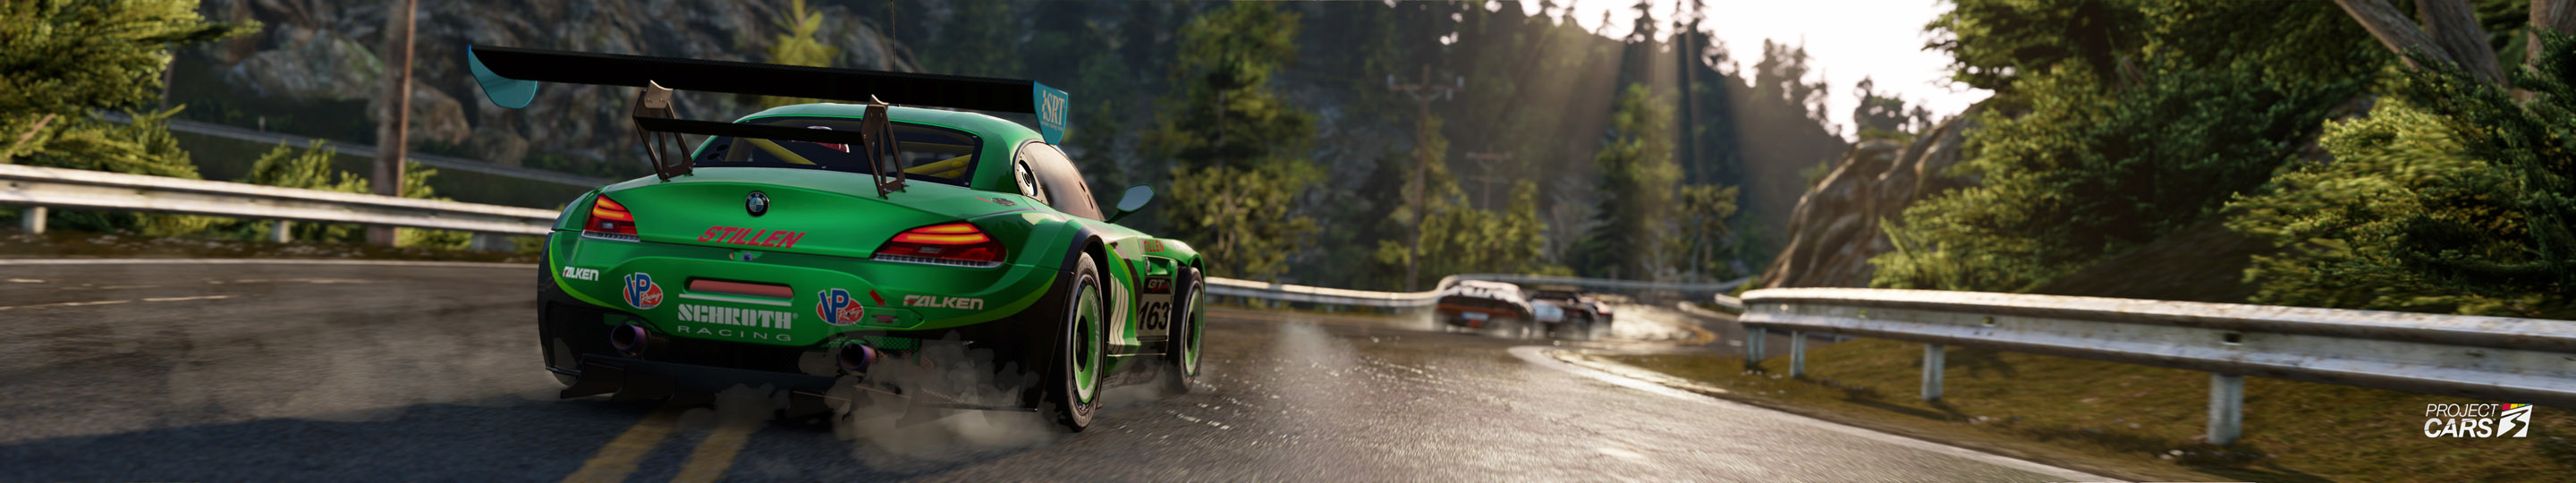 0 PROJECT CARS 3 BMW Z4 GT3 at CALI HIGHWAY REVERSE copy.jpg